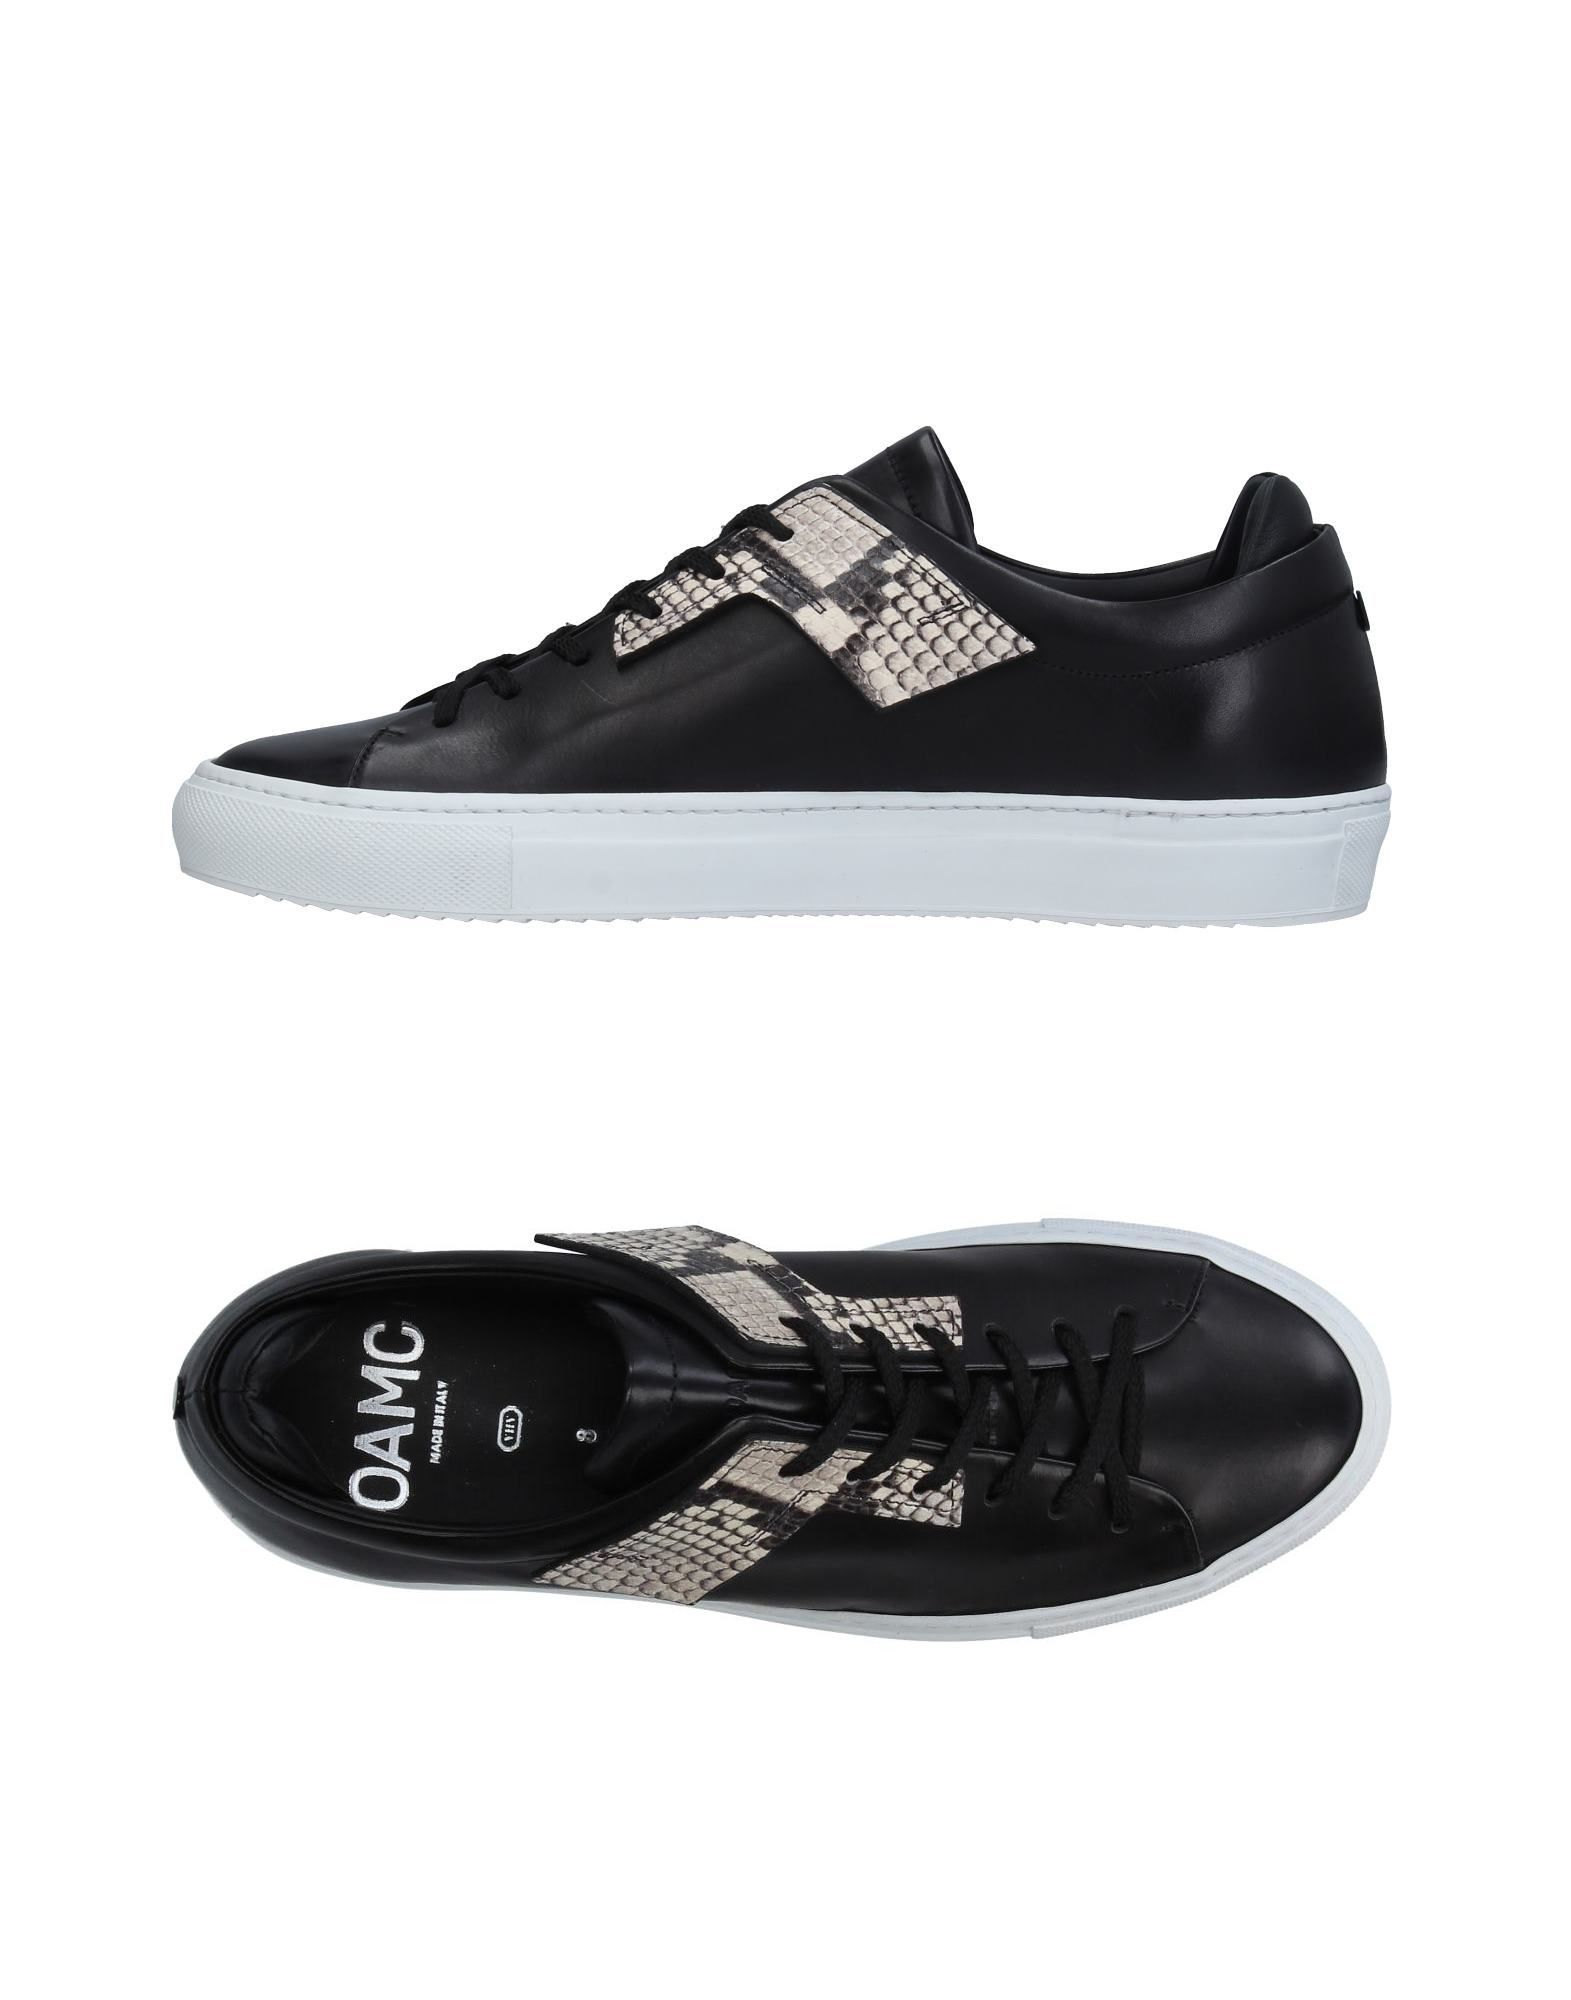 Oamc Sneakers - Men Oamc Sneakers online on 11327032LA  United Kingdom - 11327032LA on d30805